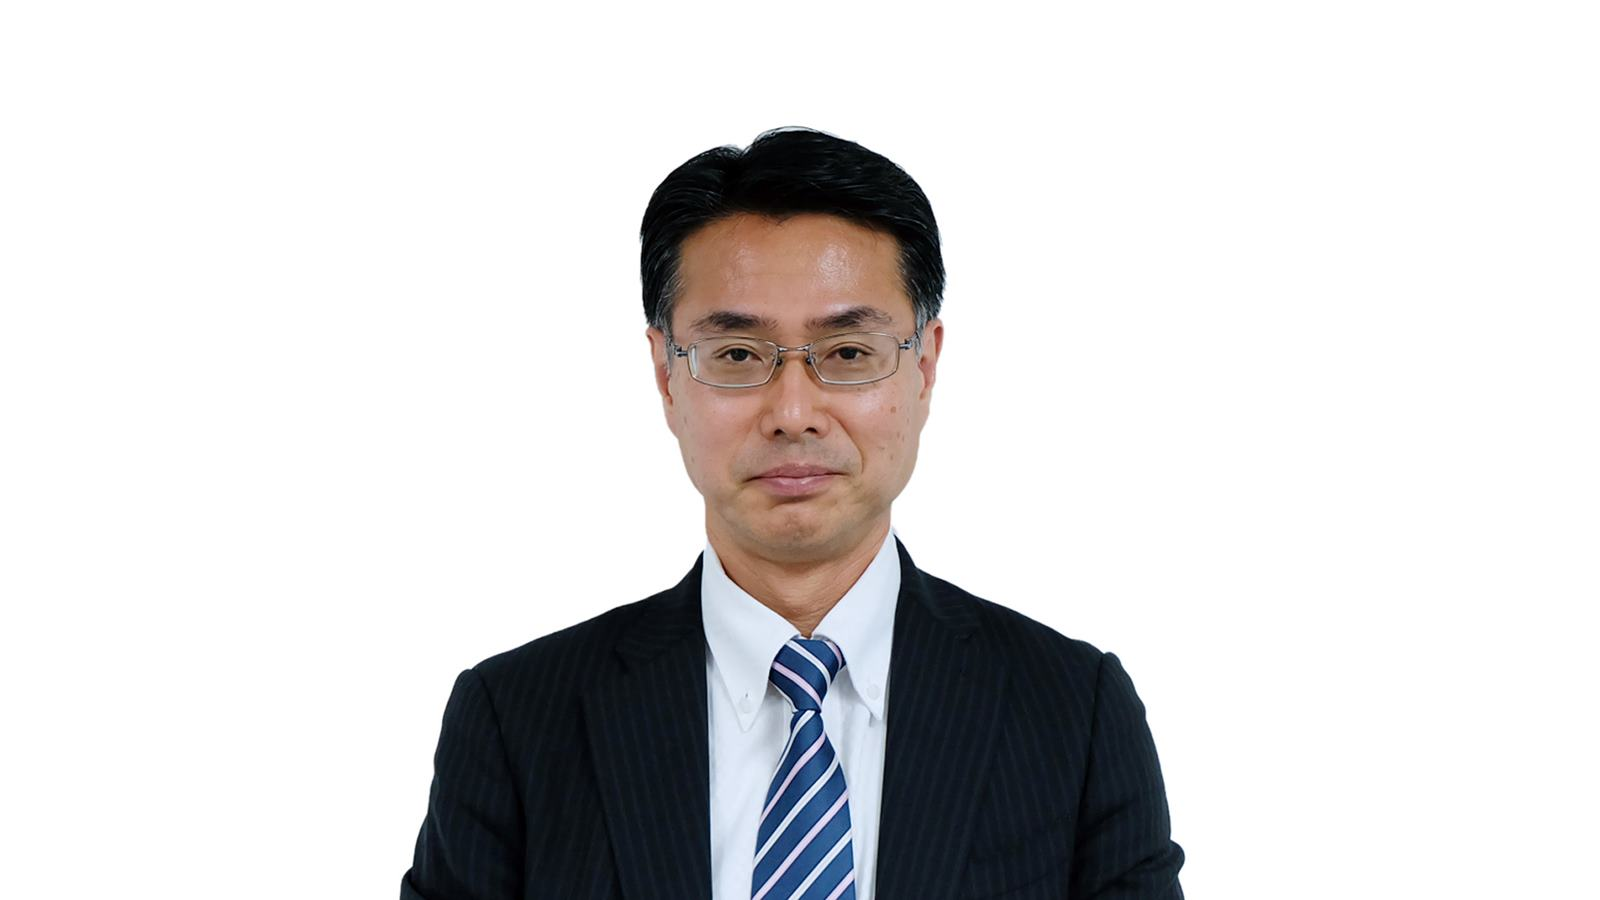 Mr. Atsushi Ogata - President, CEO and MD of Honda Motorcycle and Scooters